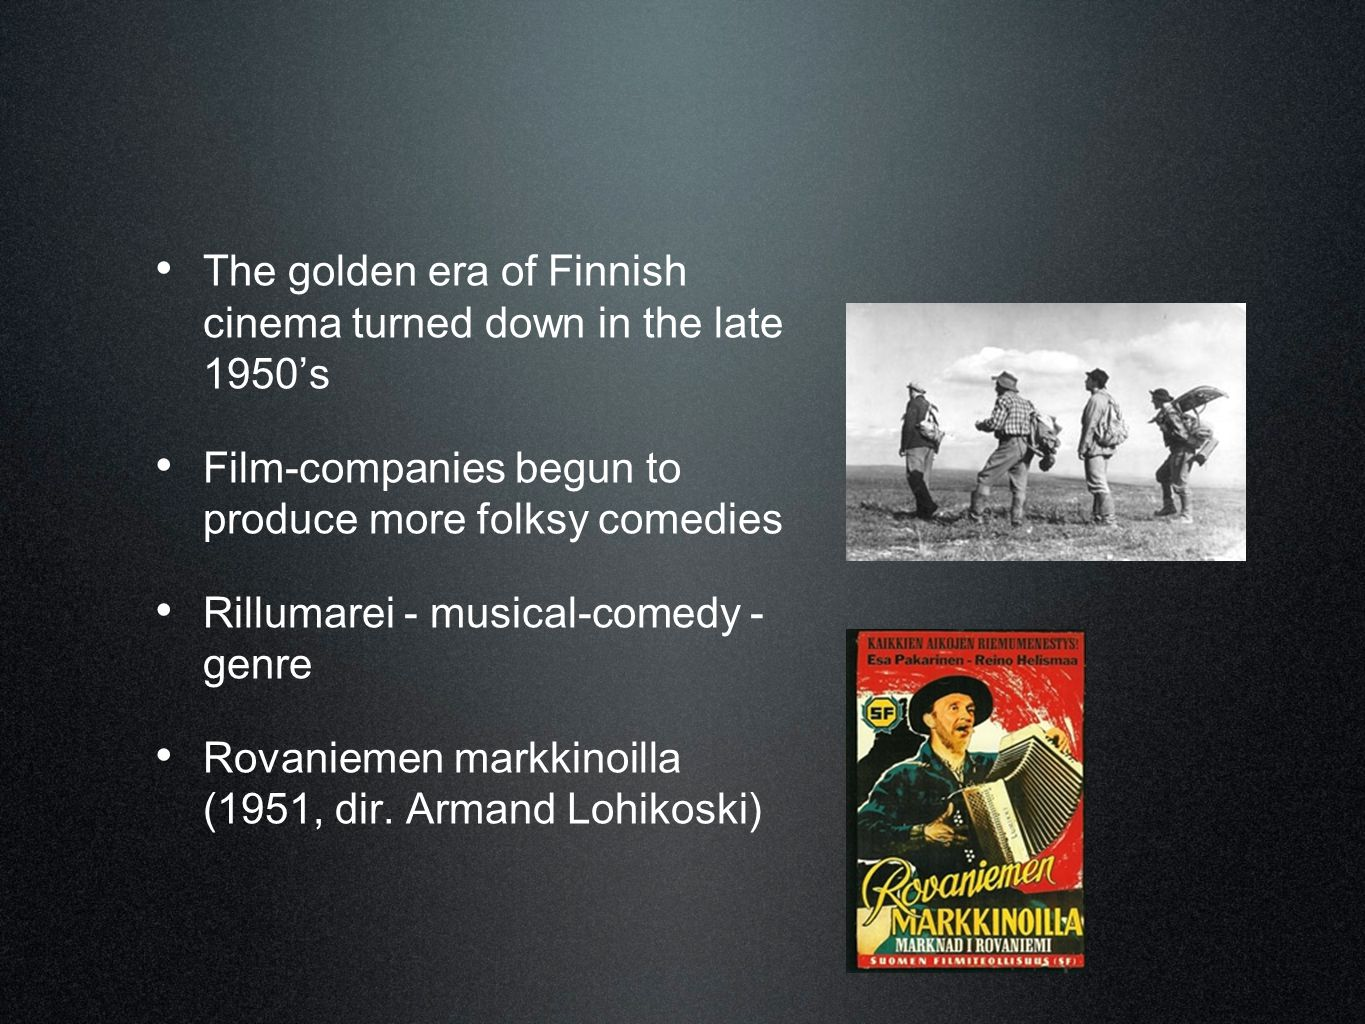 • The golden era of Finnish cinema turned down in the late 1950's • Film-companies begun to produce more folksy comedies • Rillumarei - musical-comedy